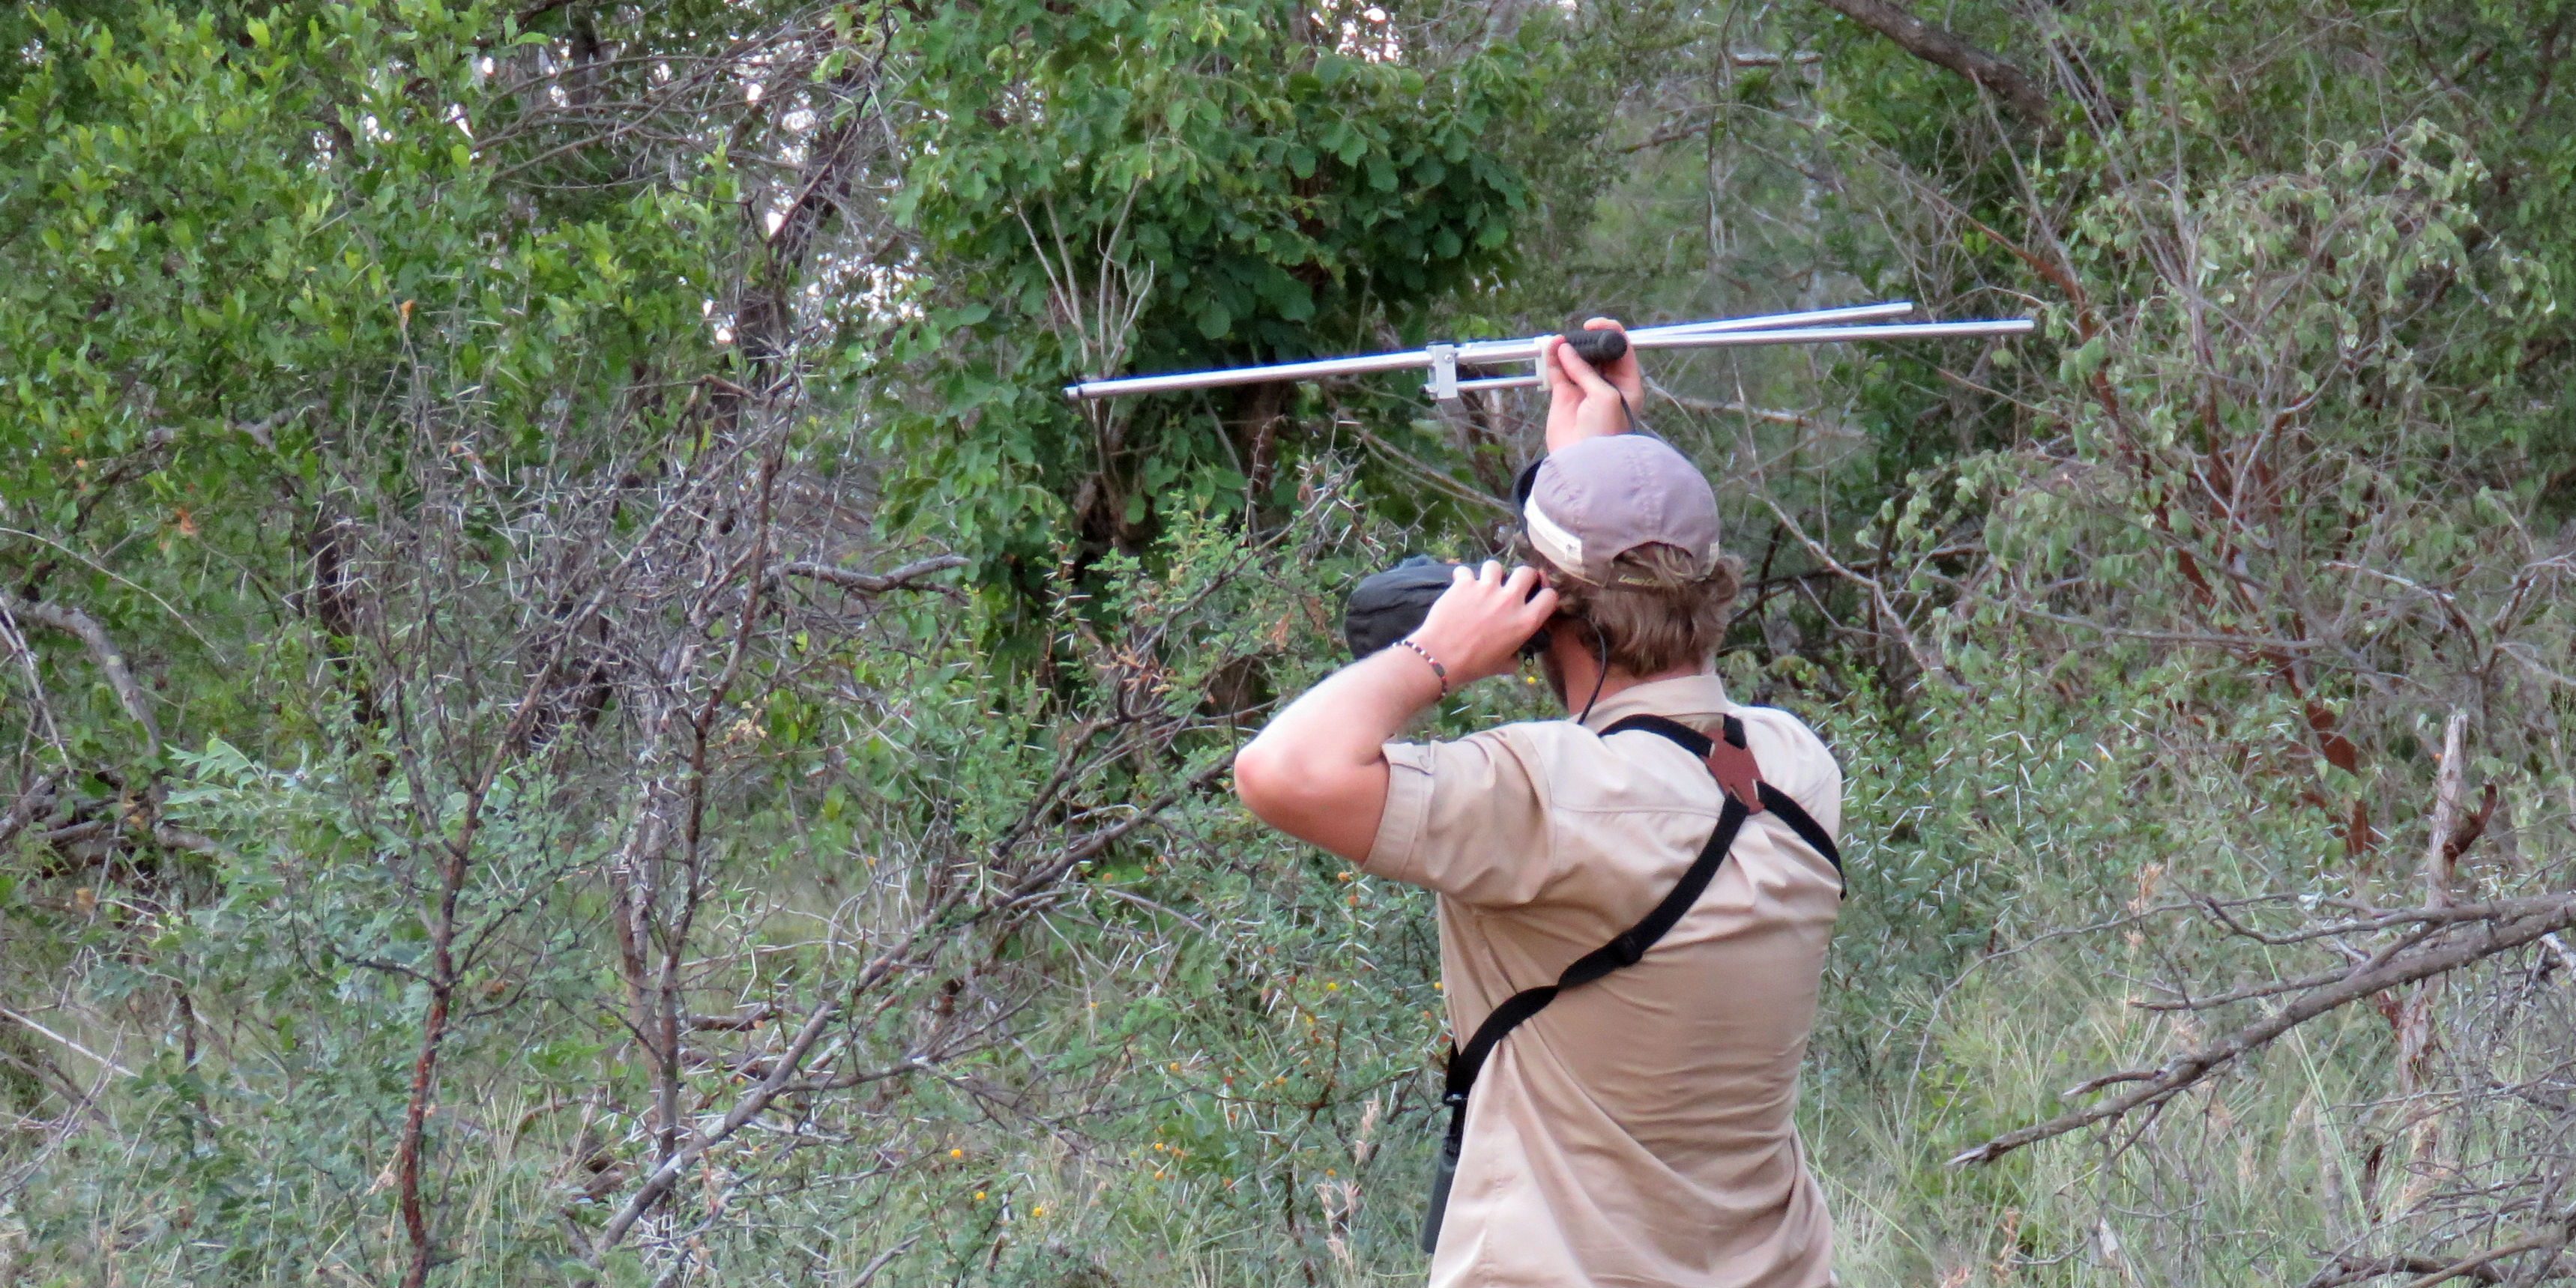 A GVI participant uses radio telemetry, as part of a wildlife conservation internship.